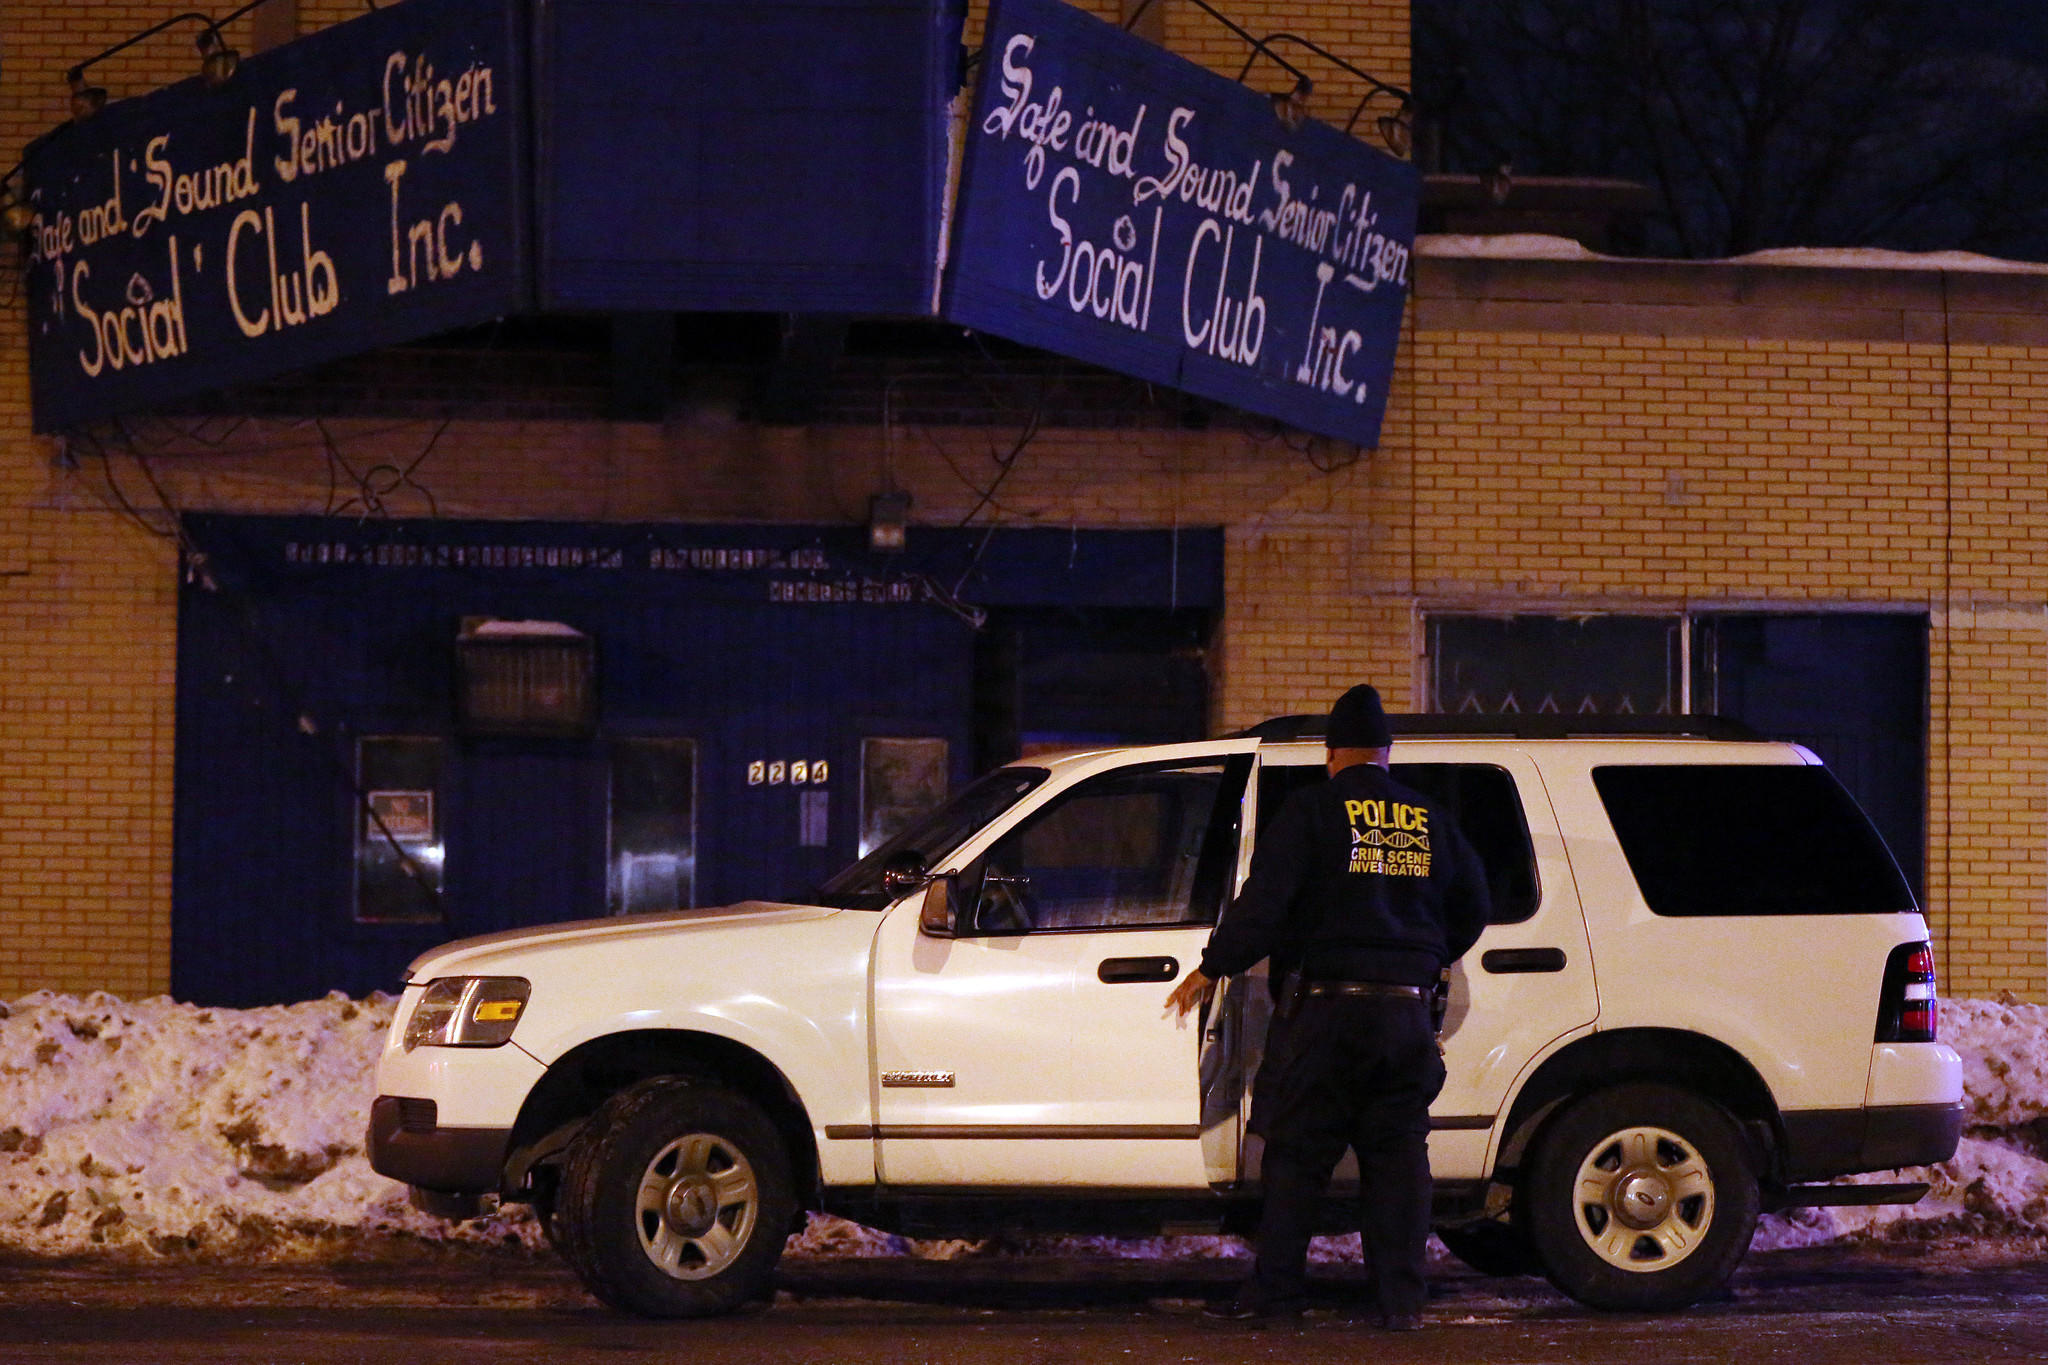 A Gary police officer leaves a crime scene after reports of a shooting at the Safe and Sound Senior Citizen Social Club in the 2000 block of South Broadway Avenue in Gary, Ind.